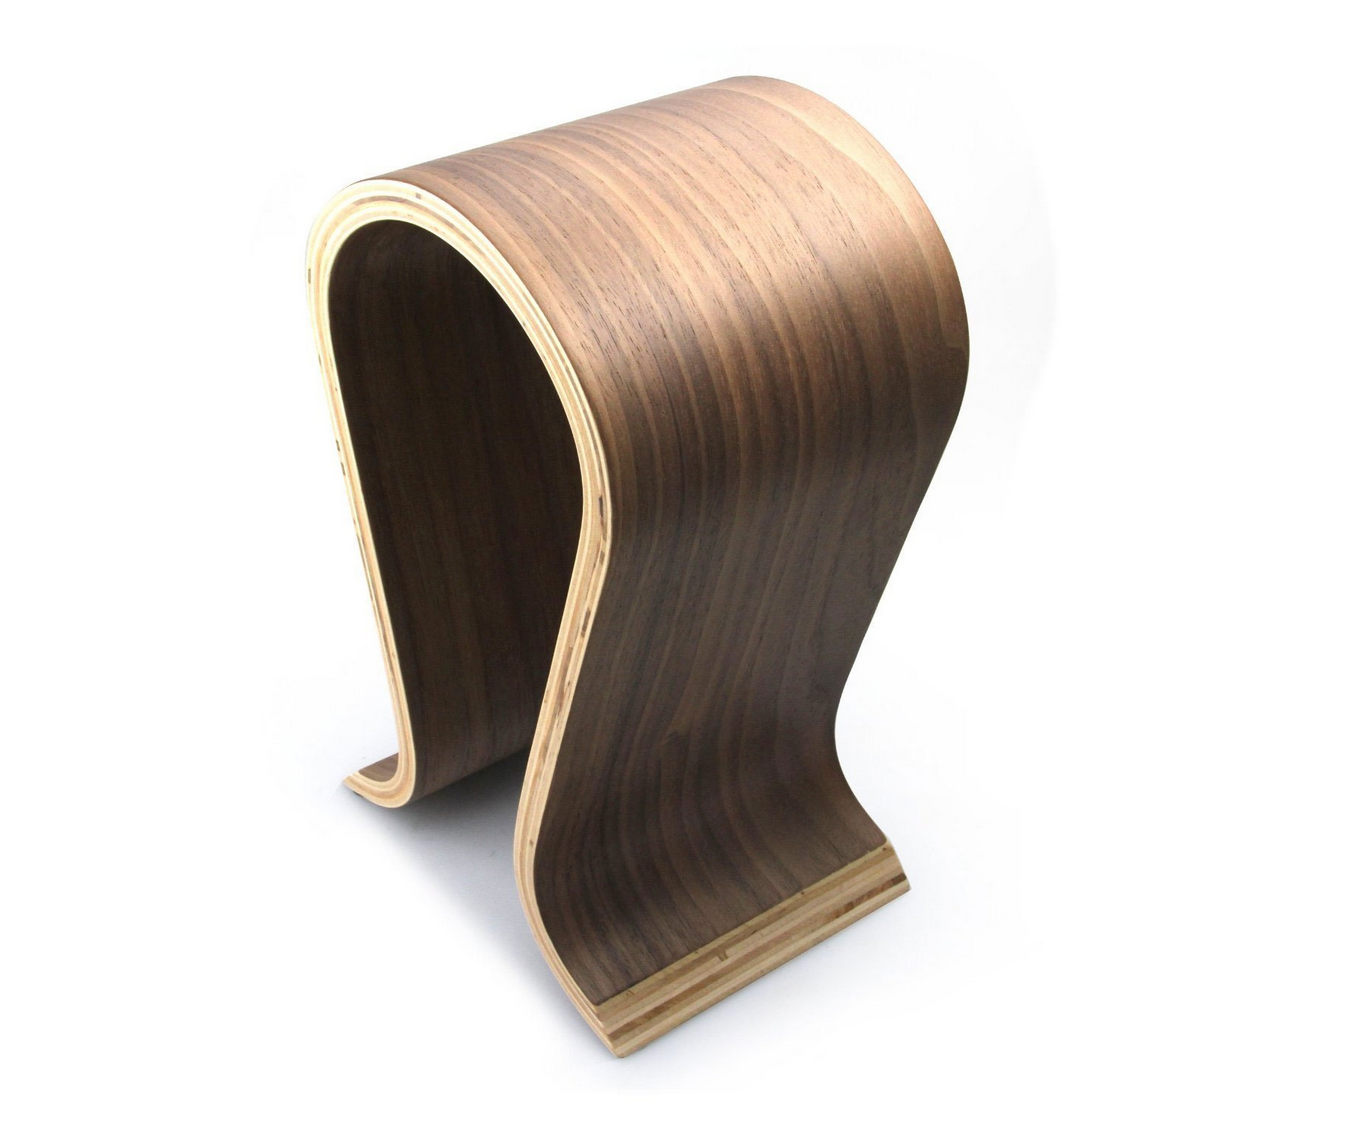 The traditional wooden omega style headphone stand